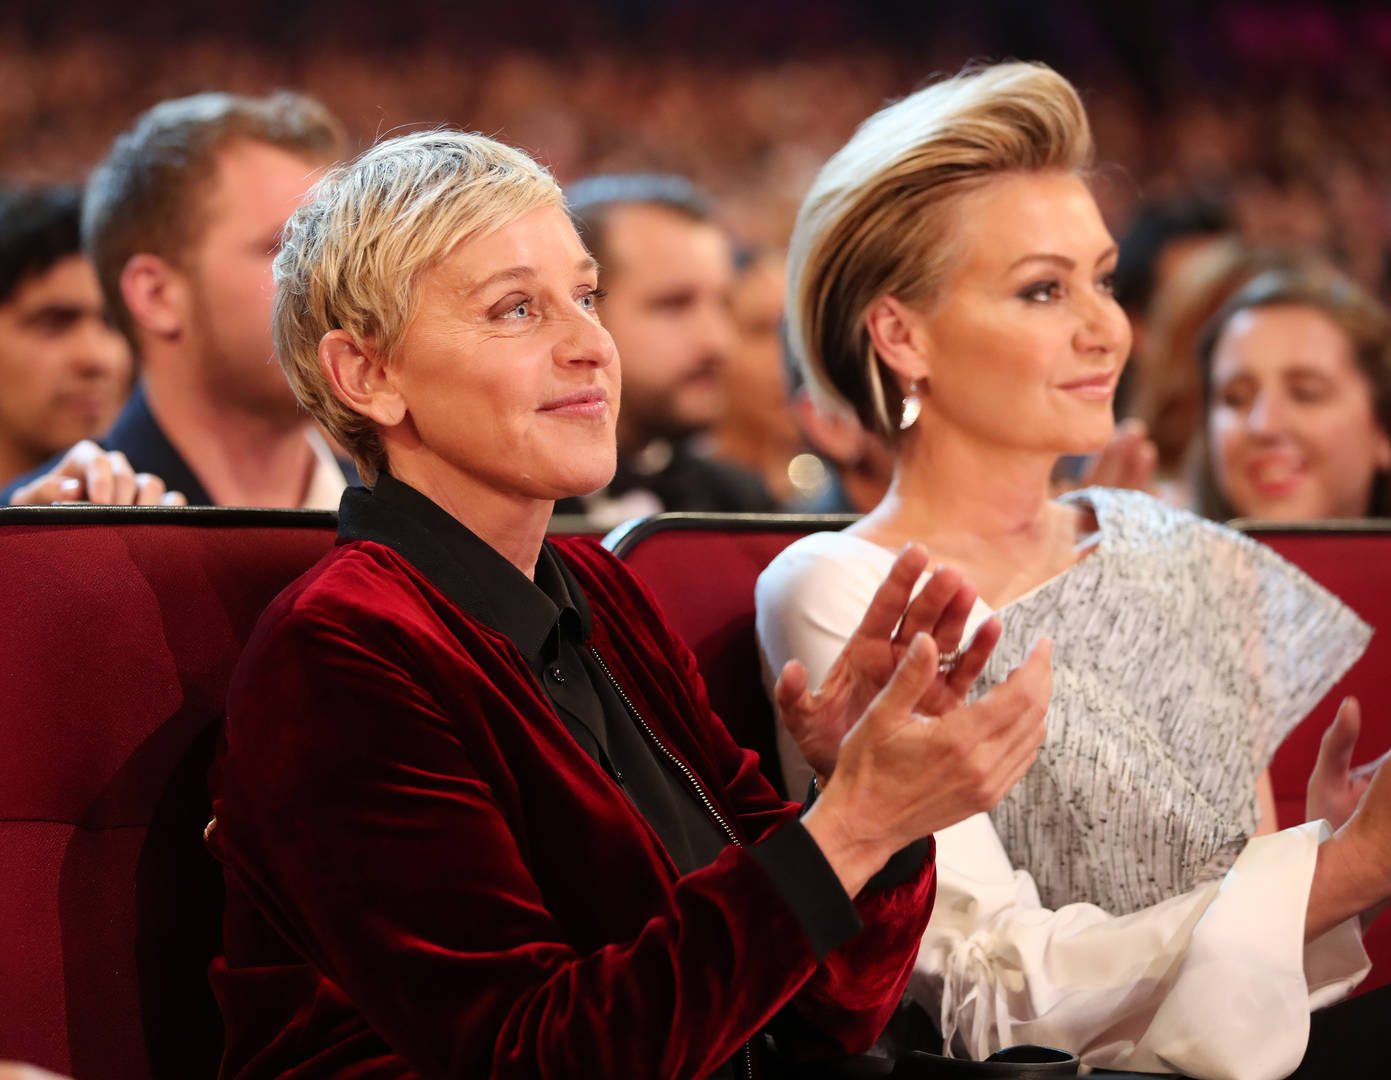 Ellen DeGeneres Opens Up About Being Sexual Assaulted By Her Step-Father At 15